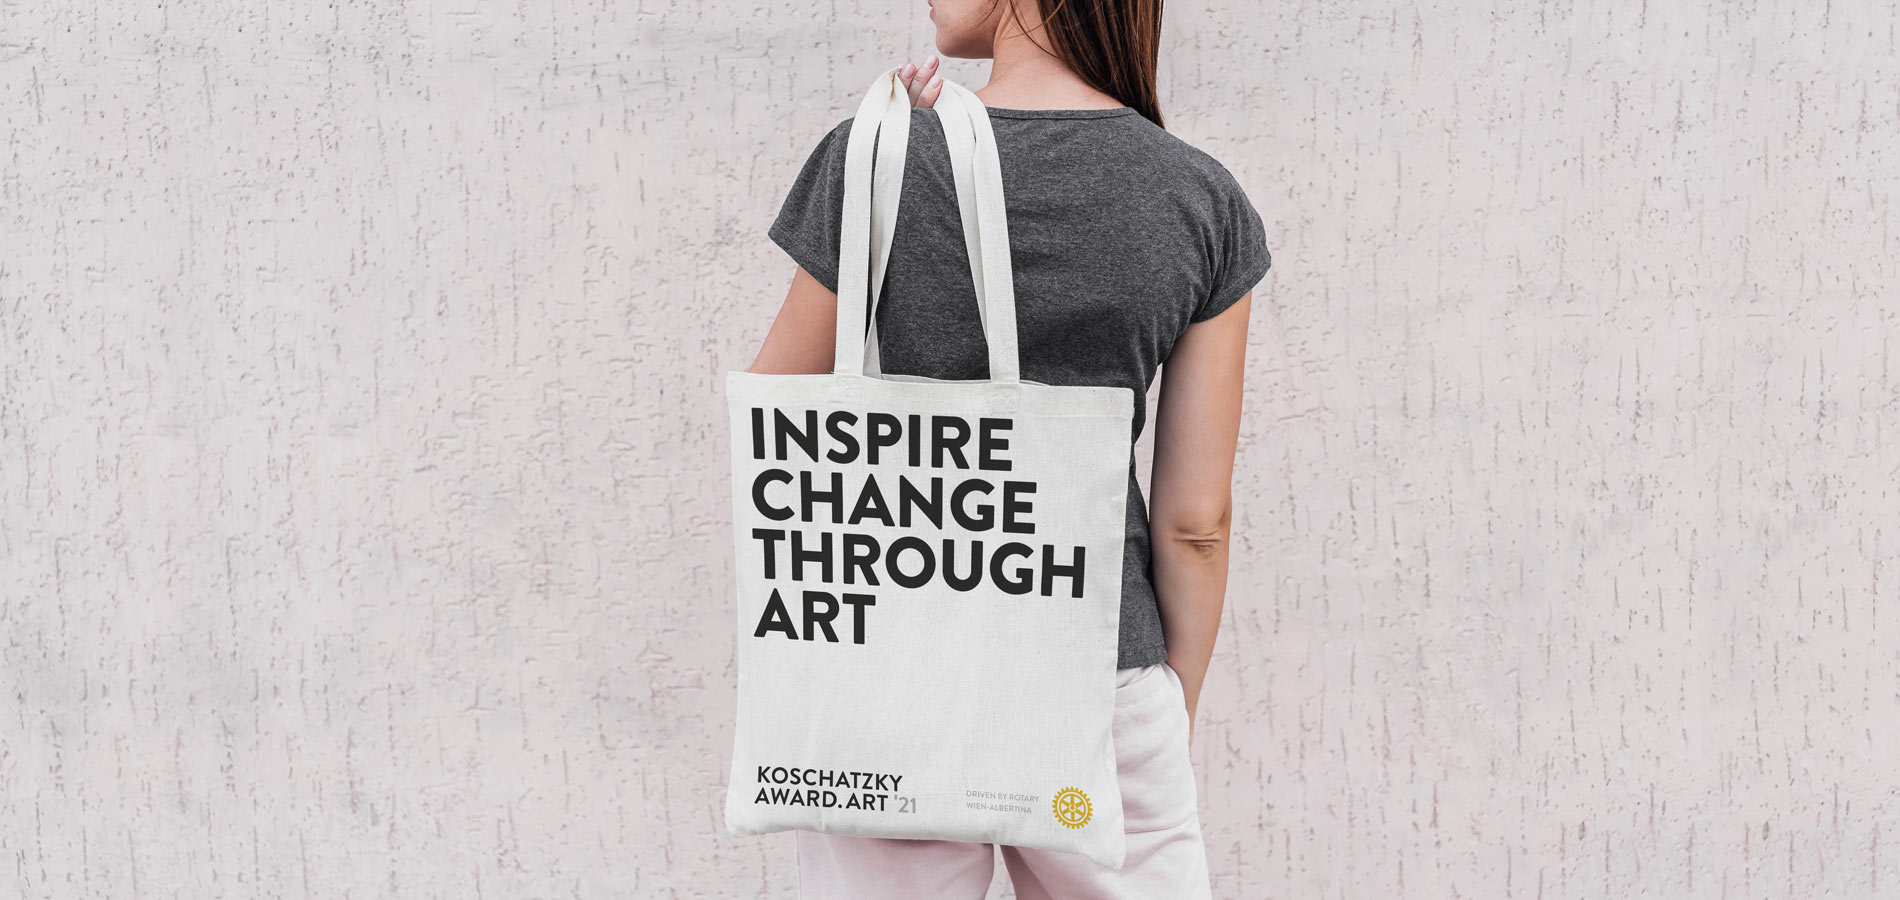 INSPIRE CHANGE THROUGH ART